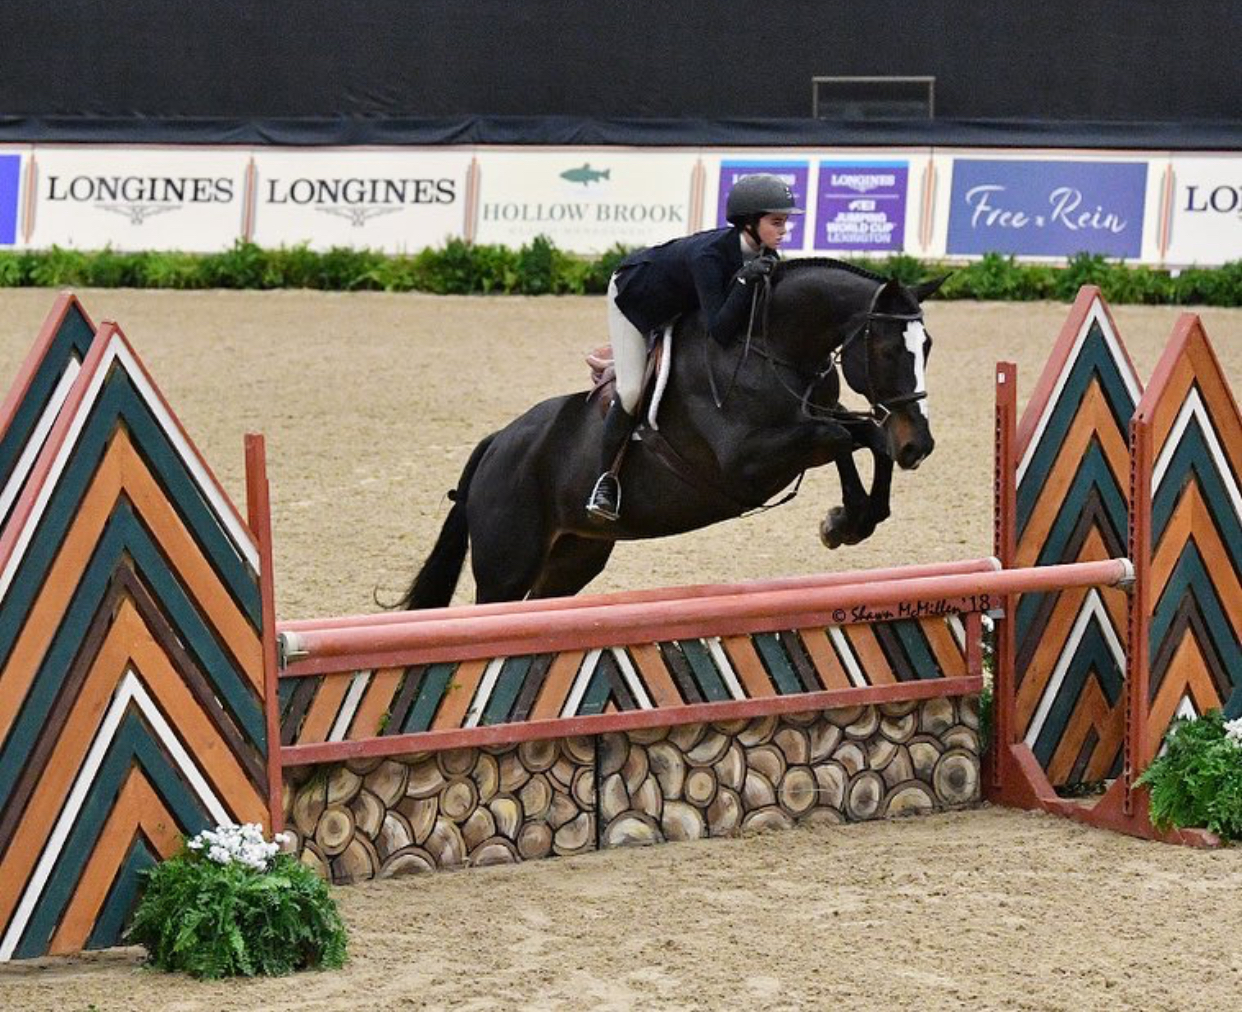 Hannah Hoch and Clear Sailing (a.k.a. Special) at the 2018 National Horse Show in Lexington, KY. Photo by Shawn McMillen Photography